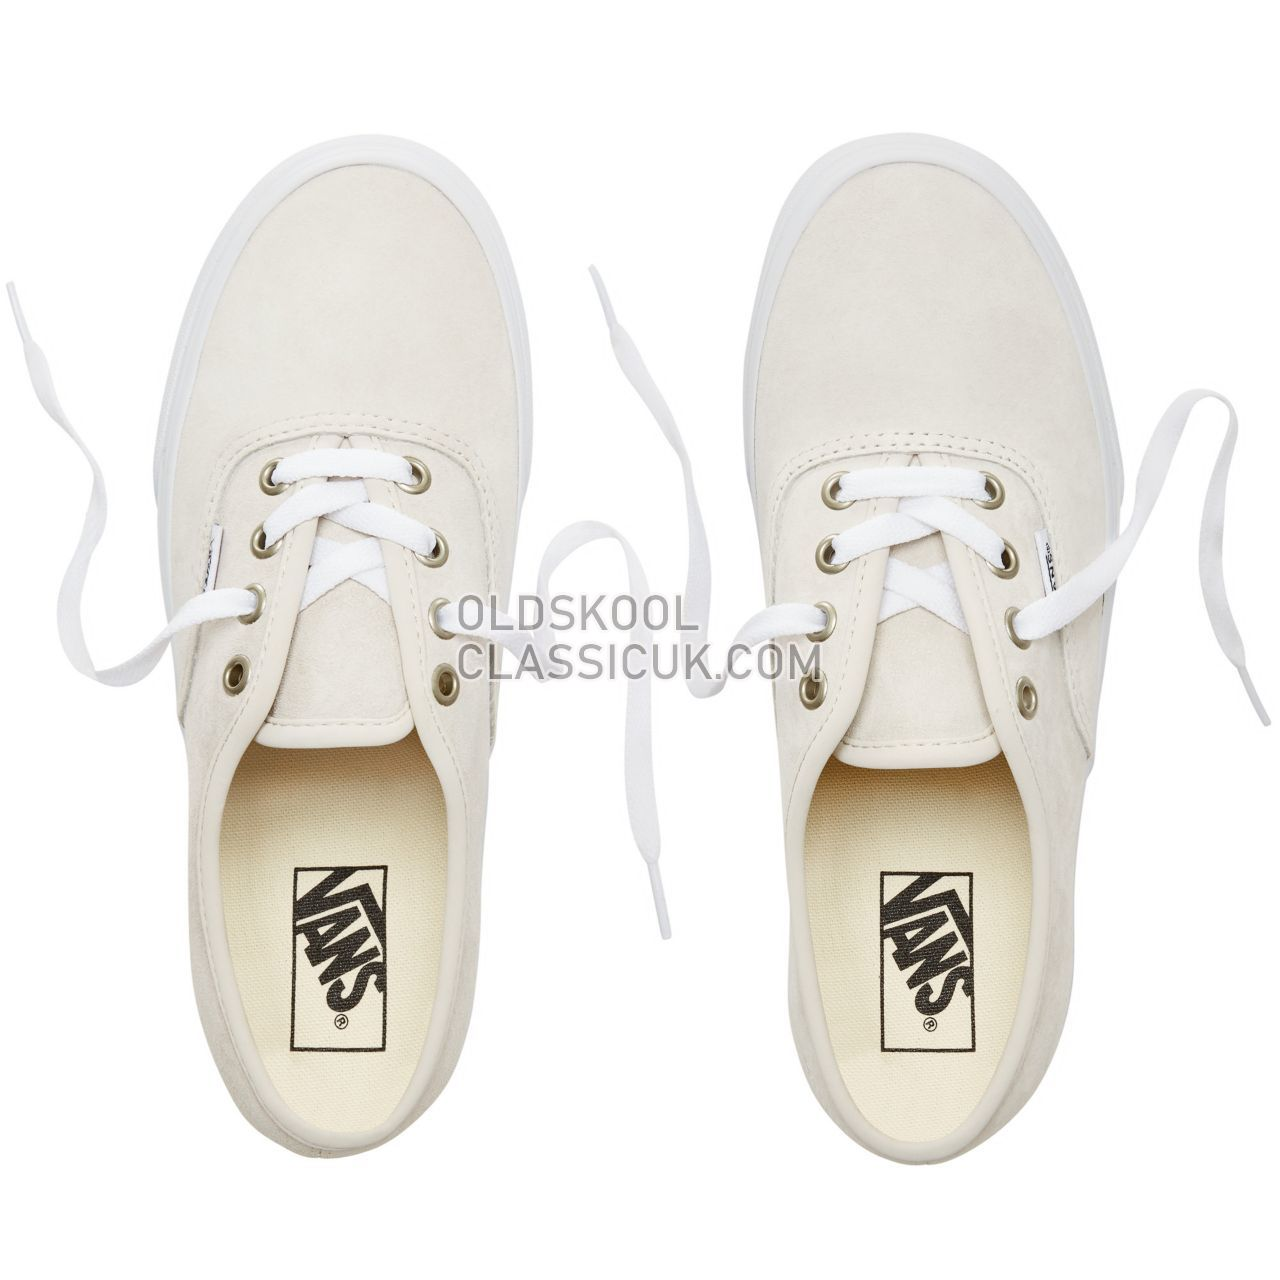 Vans Suede Authentic Sneakers Mens (Pig Suede) Moonbeam/True White VA38EMU5L Shoes